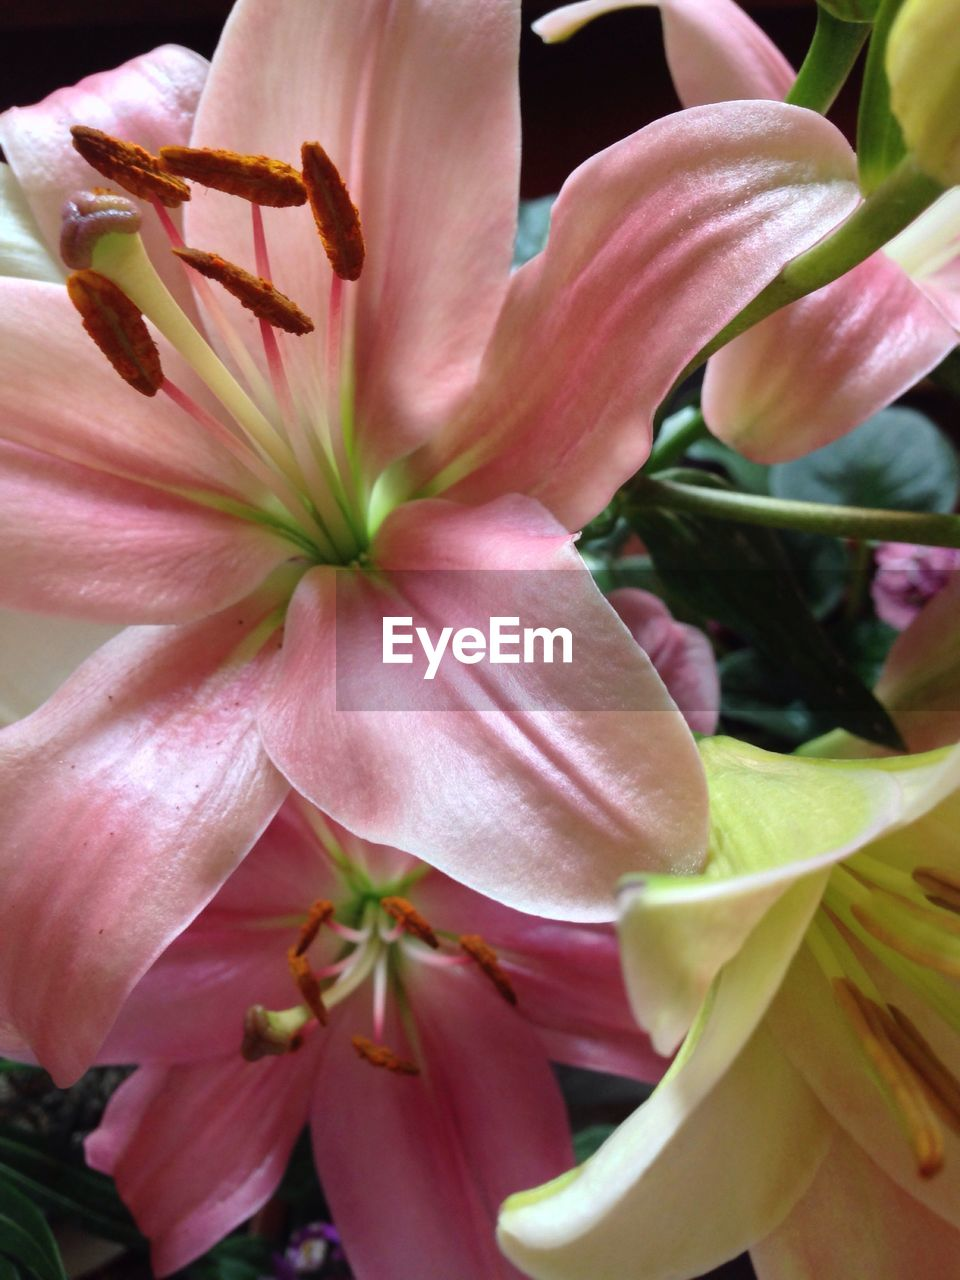 flower, petal, beauty in nature, fragility, growth, flower head, nature, plant, freshness, blossom, no people, blooming, stamen, close-up, pink color, springtime, outdoors, day lily, day